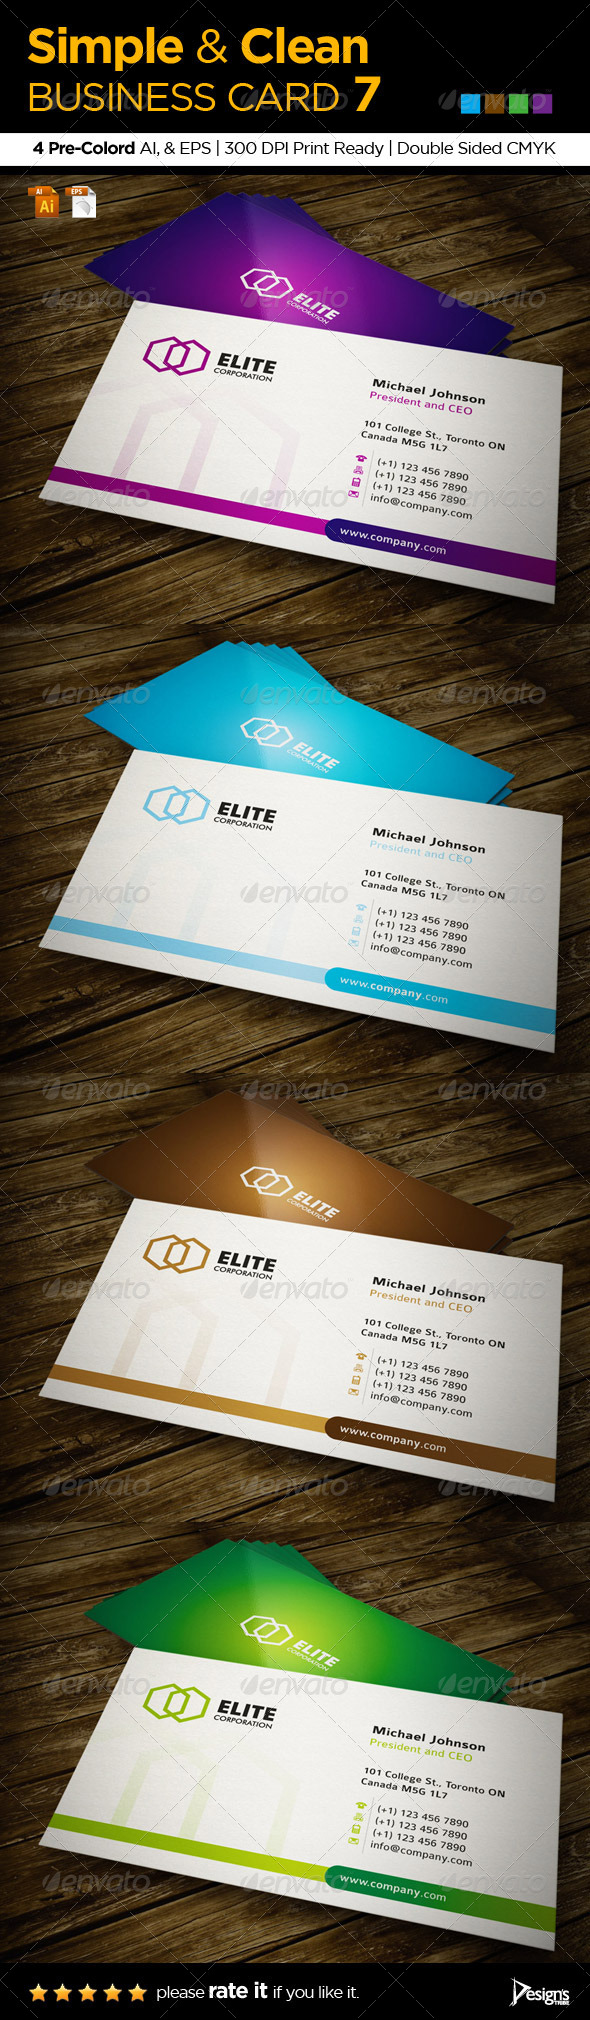 Simple and Clean Business Card 7 - Business Cards Print Templates